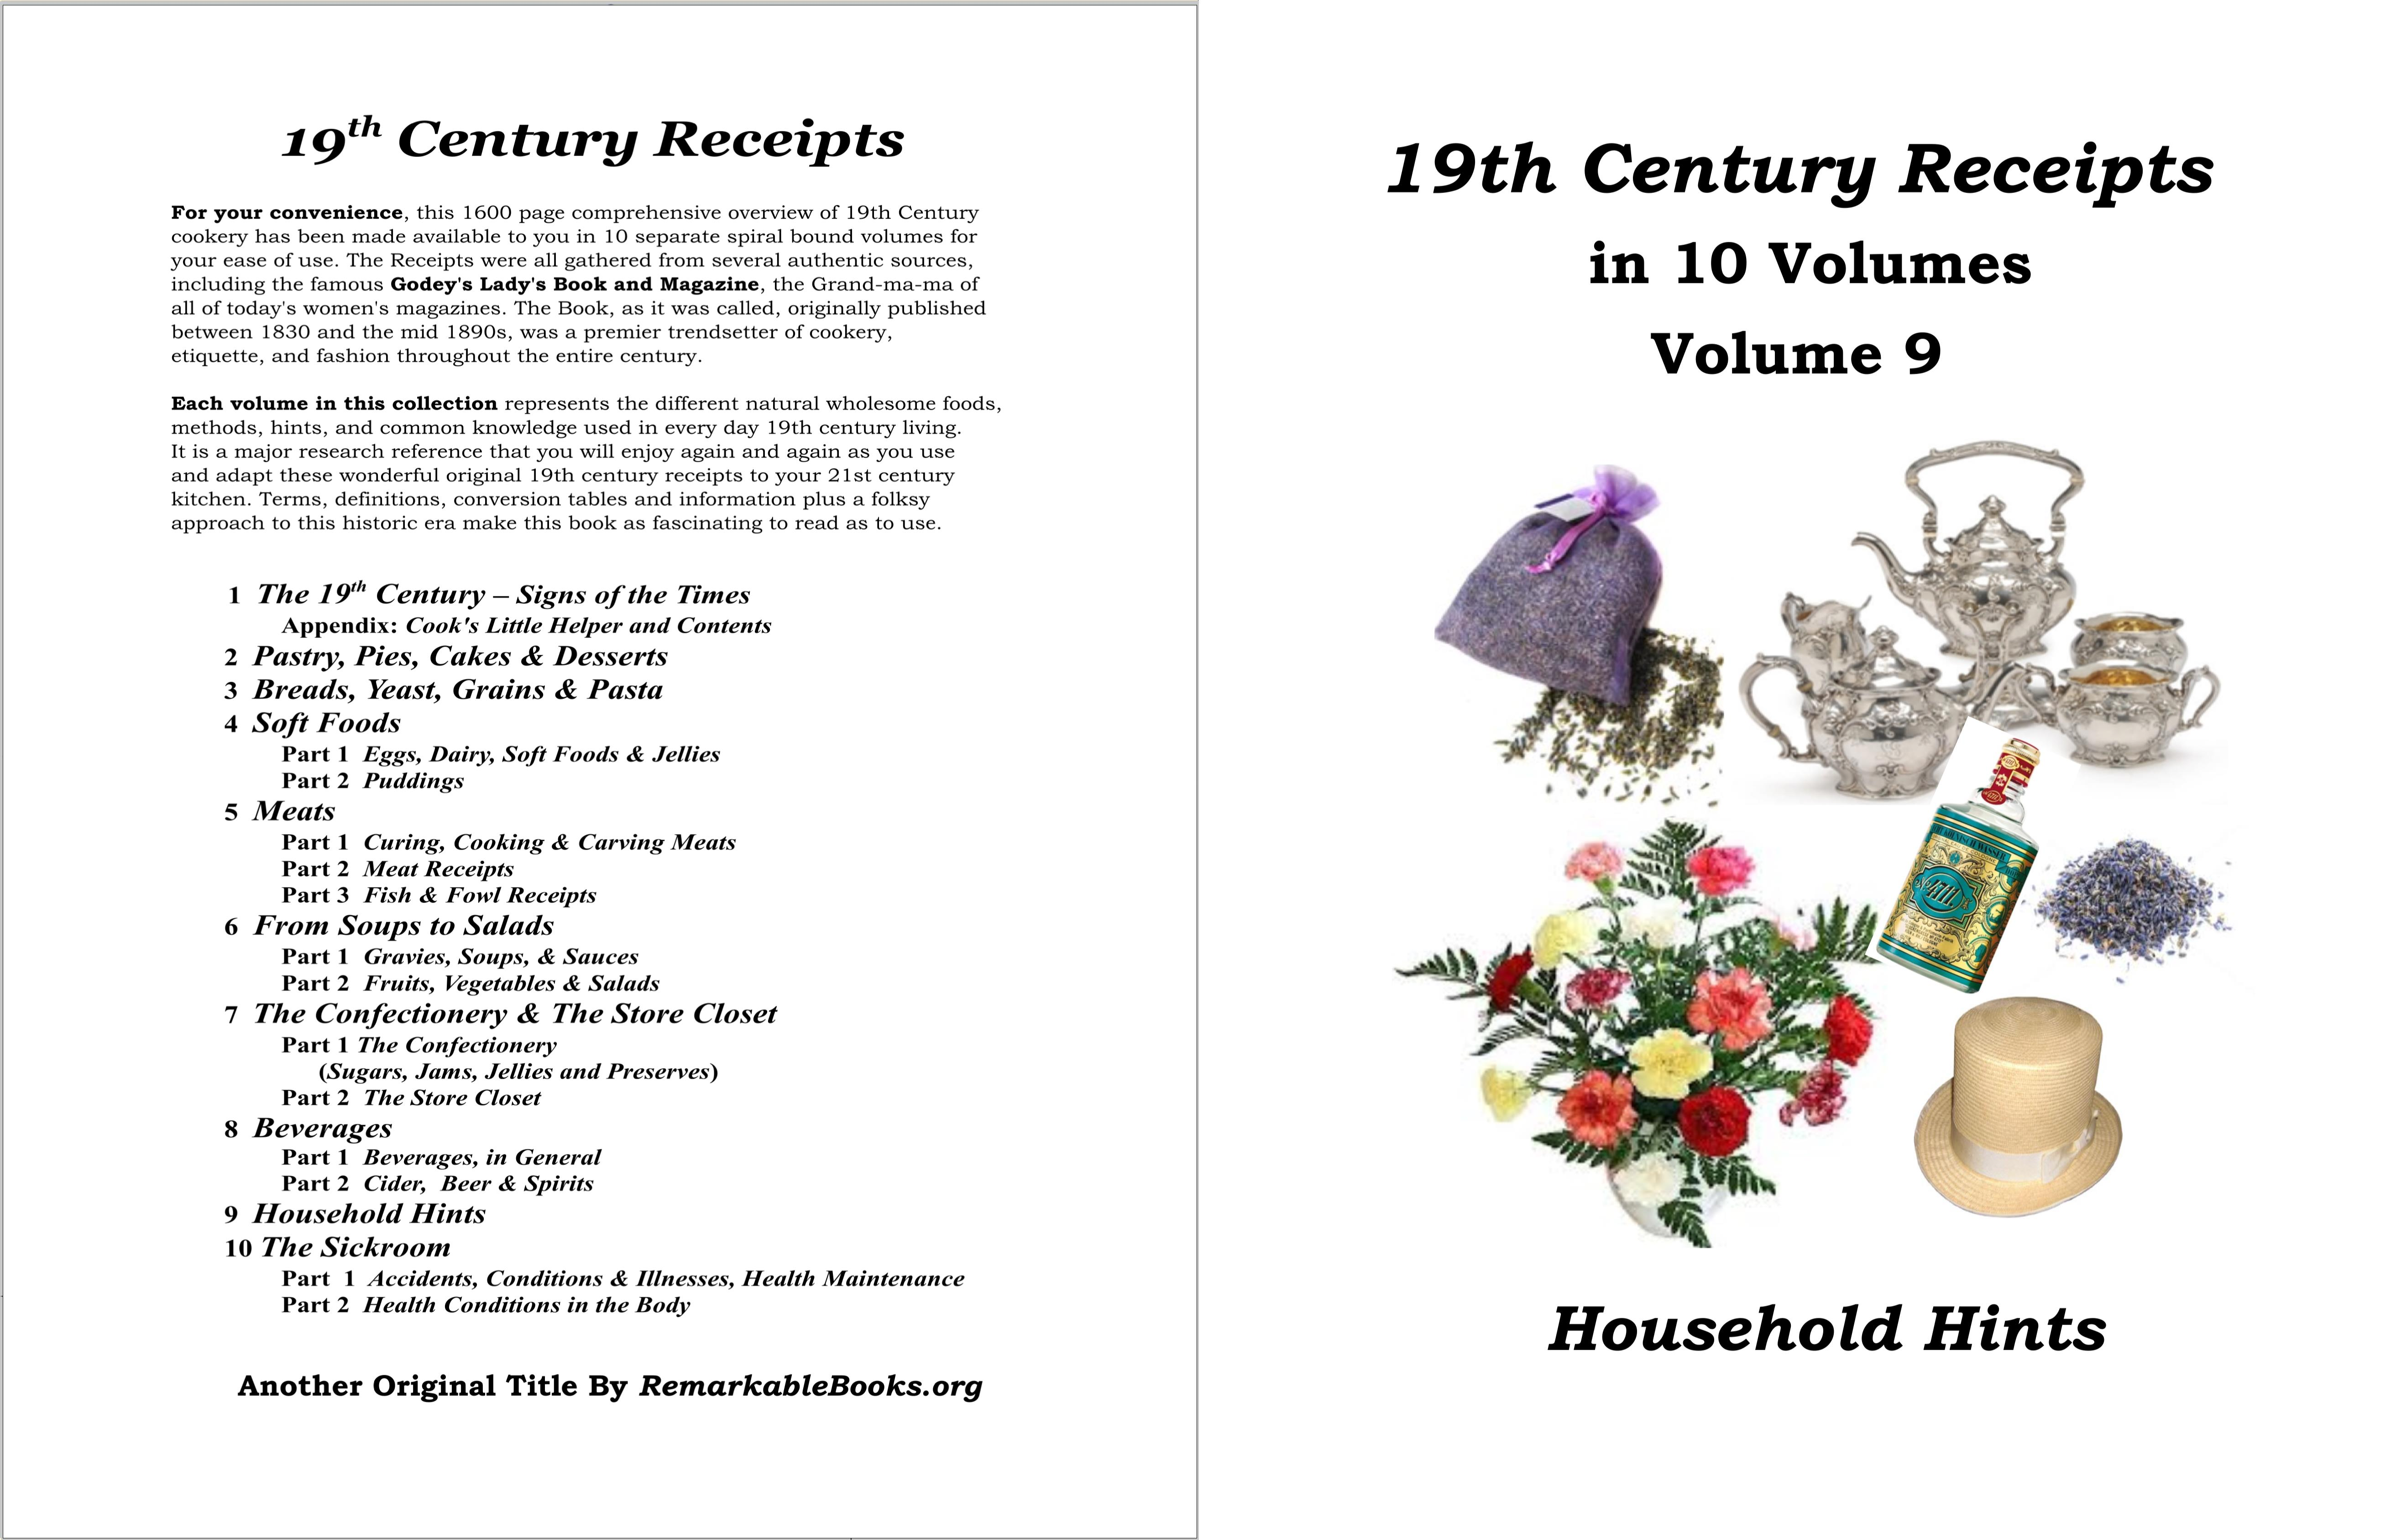 19th Century Receipts Volume 9 cover image